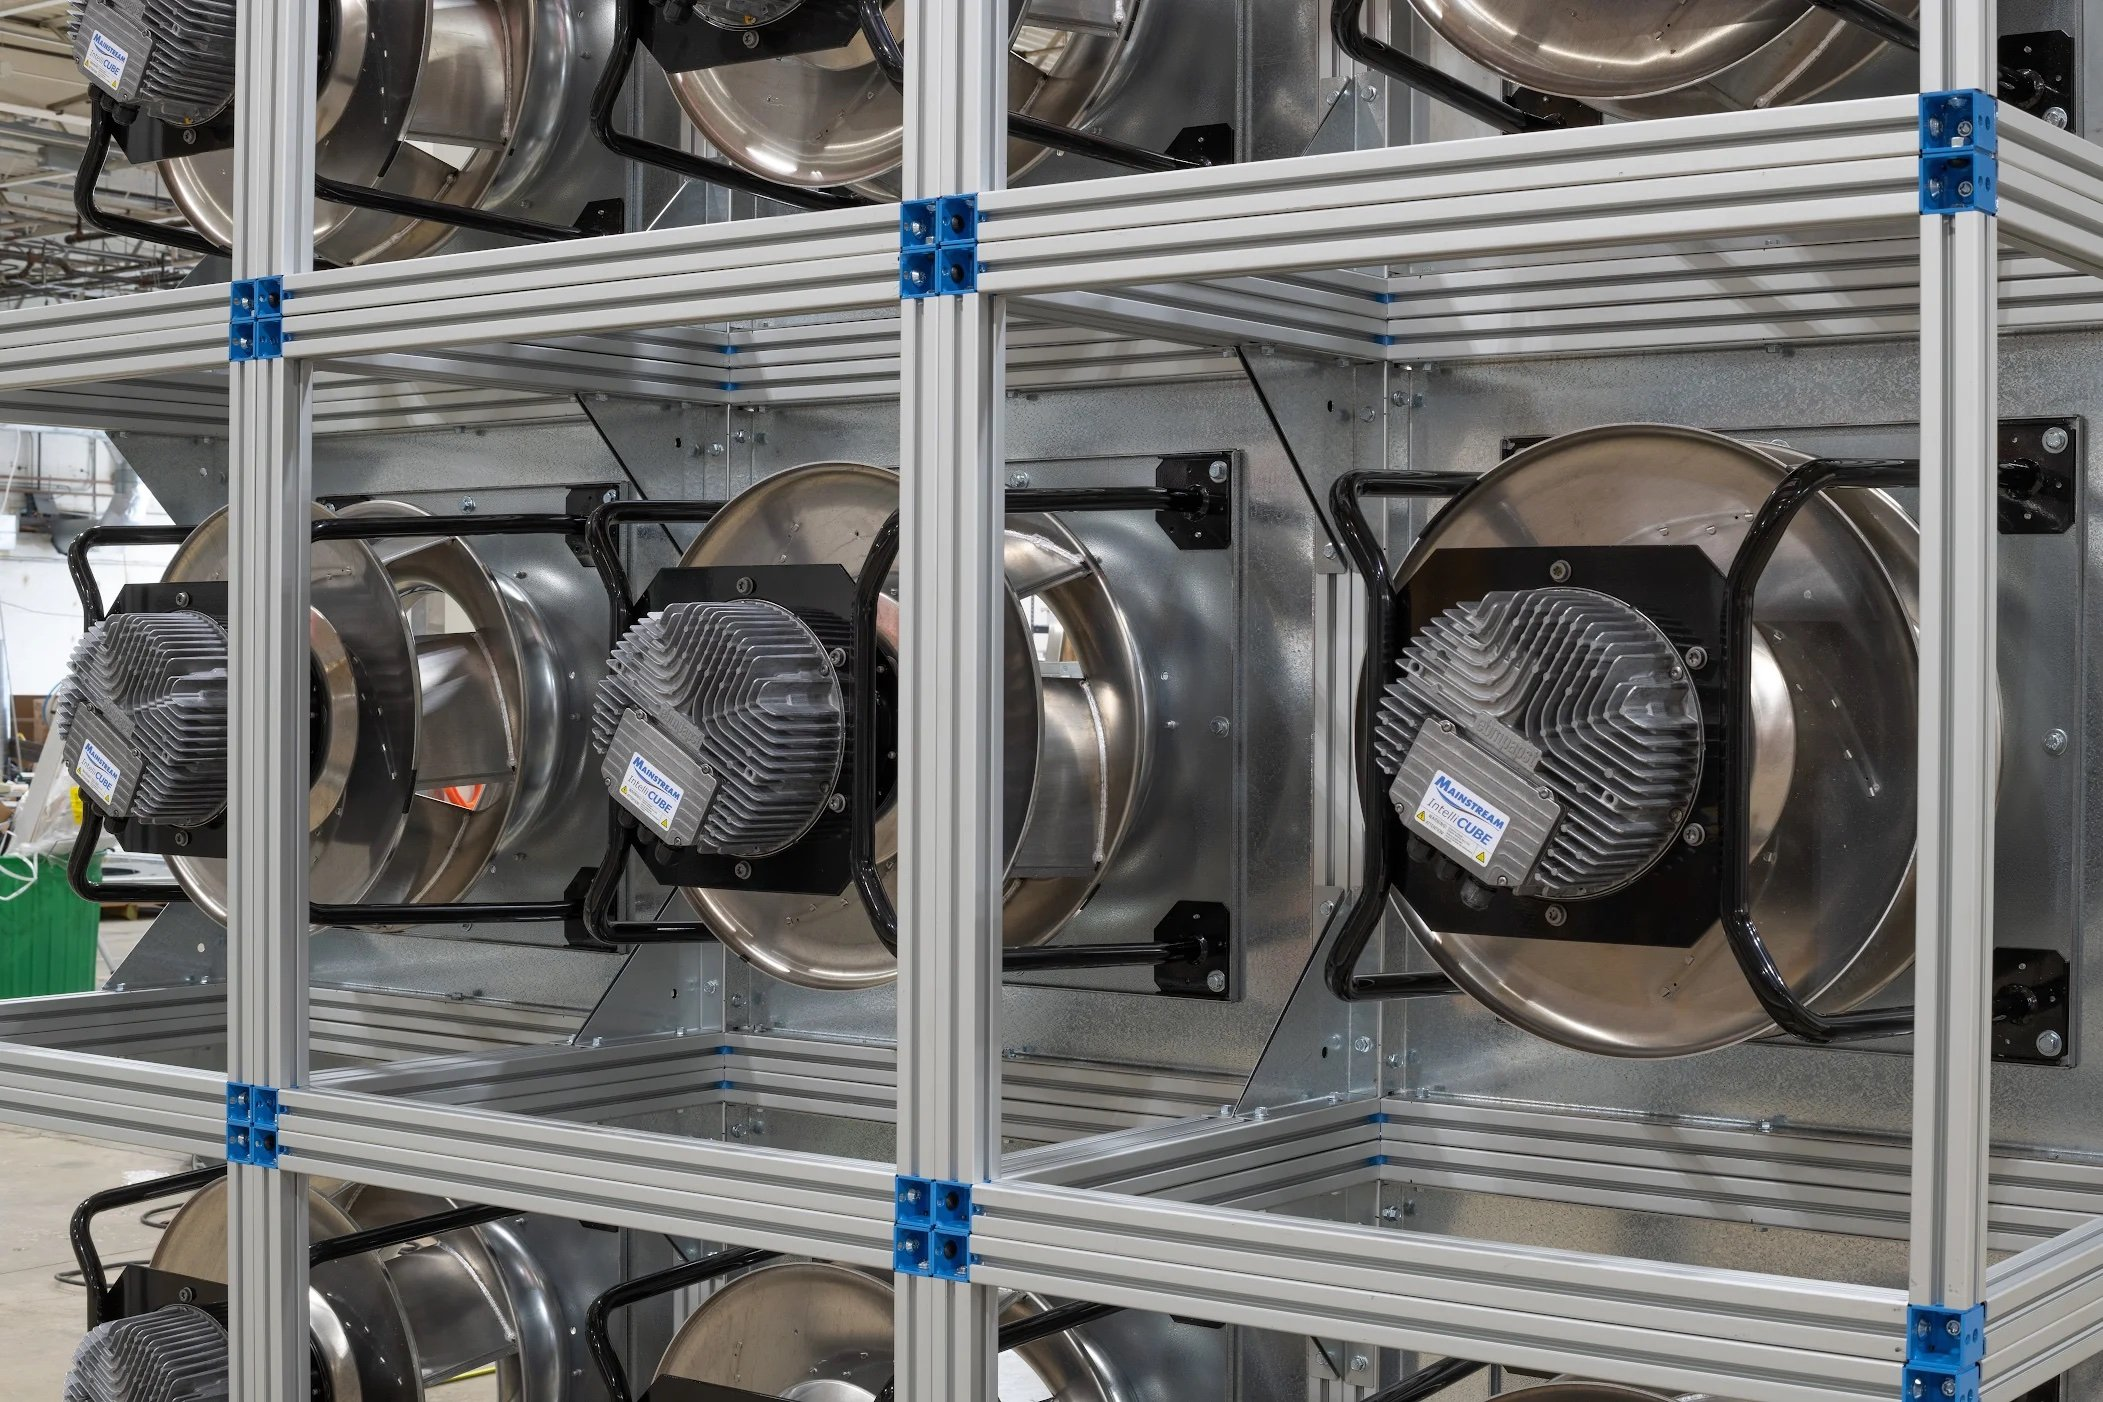 How To Address Covid with HVAC